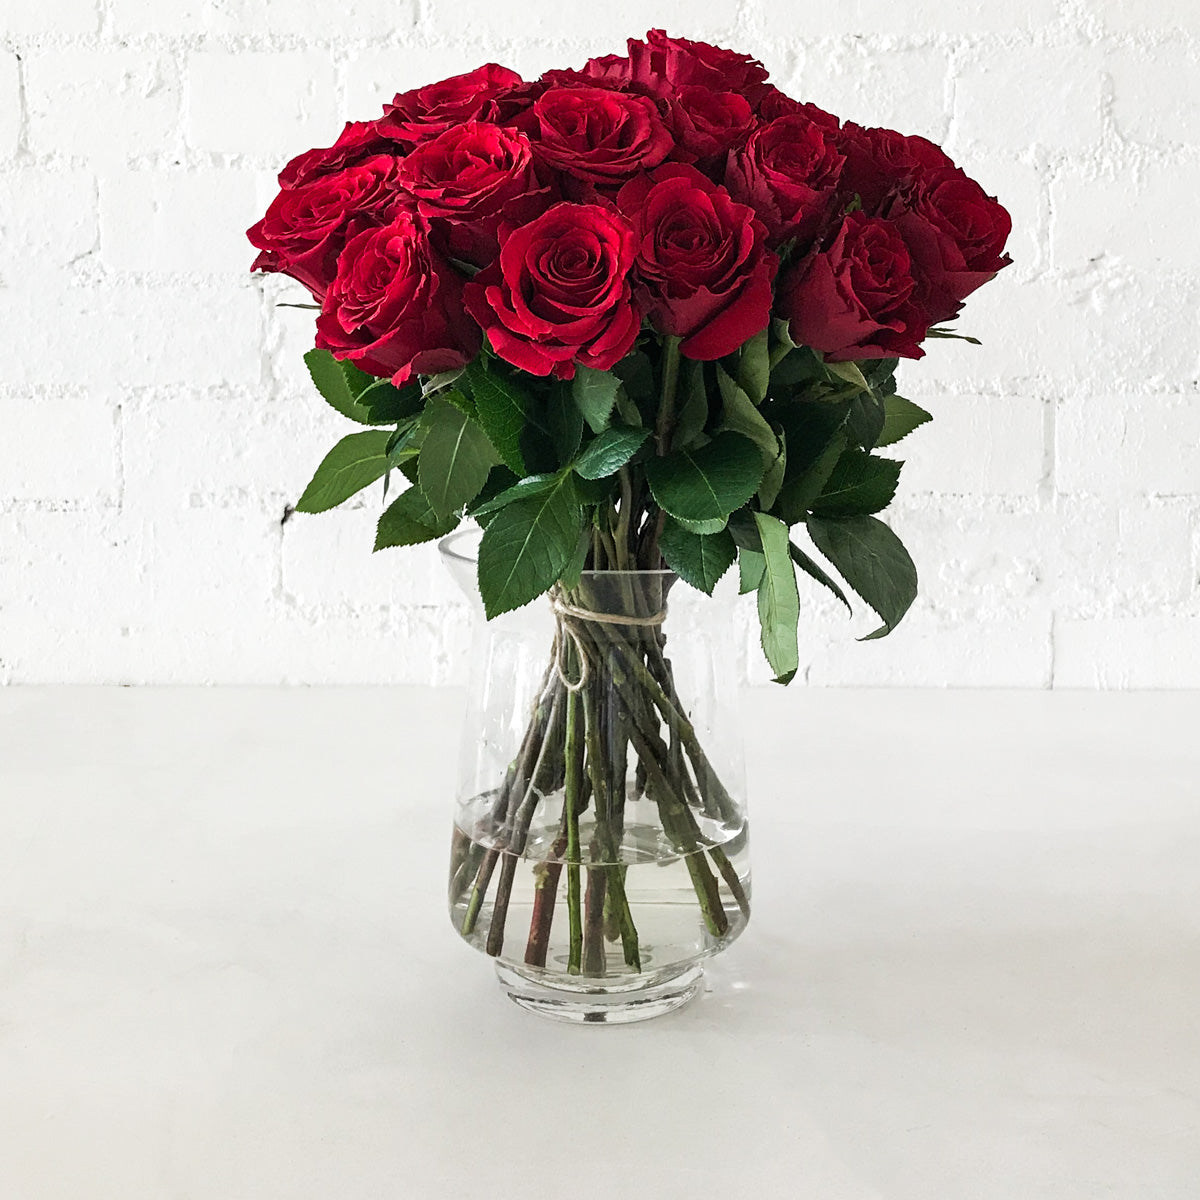 Red Roses - 24 Long Stems